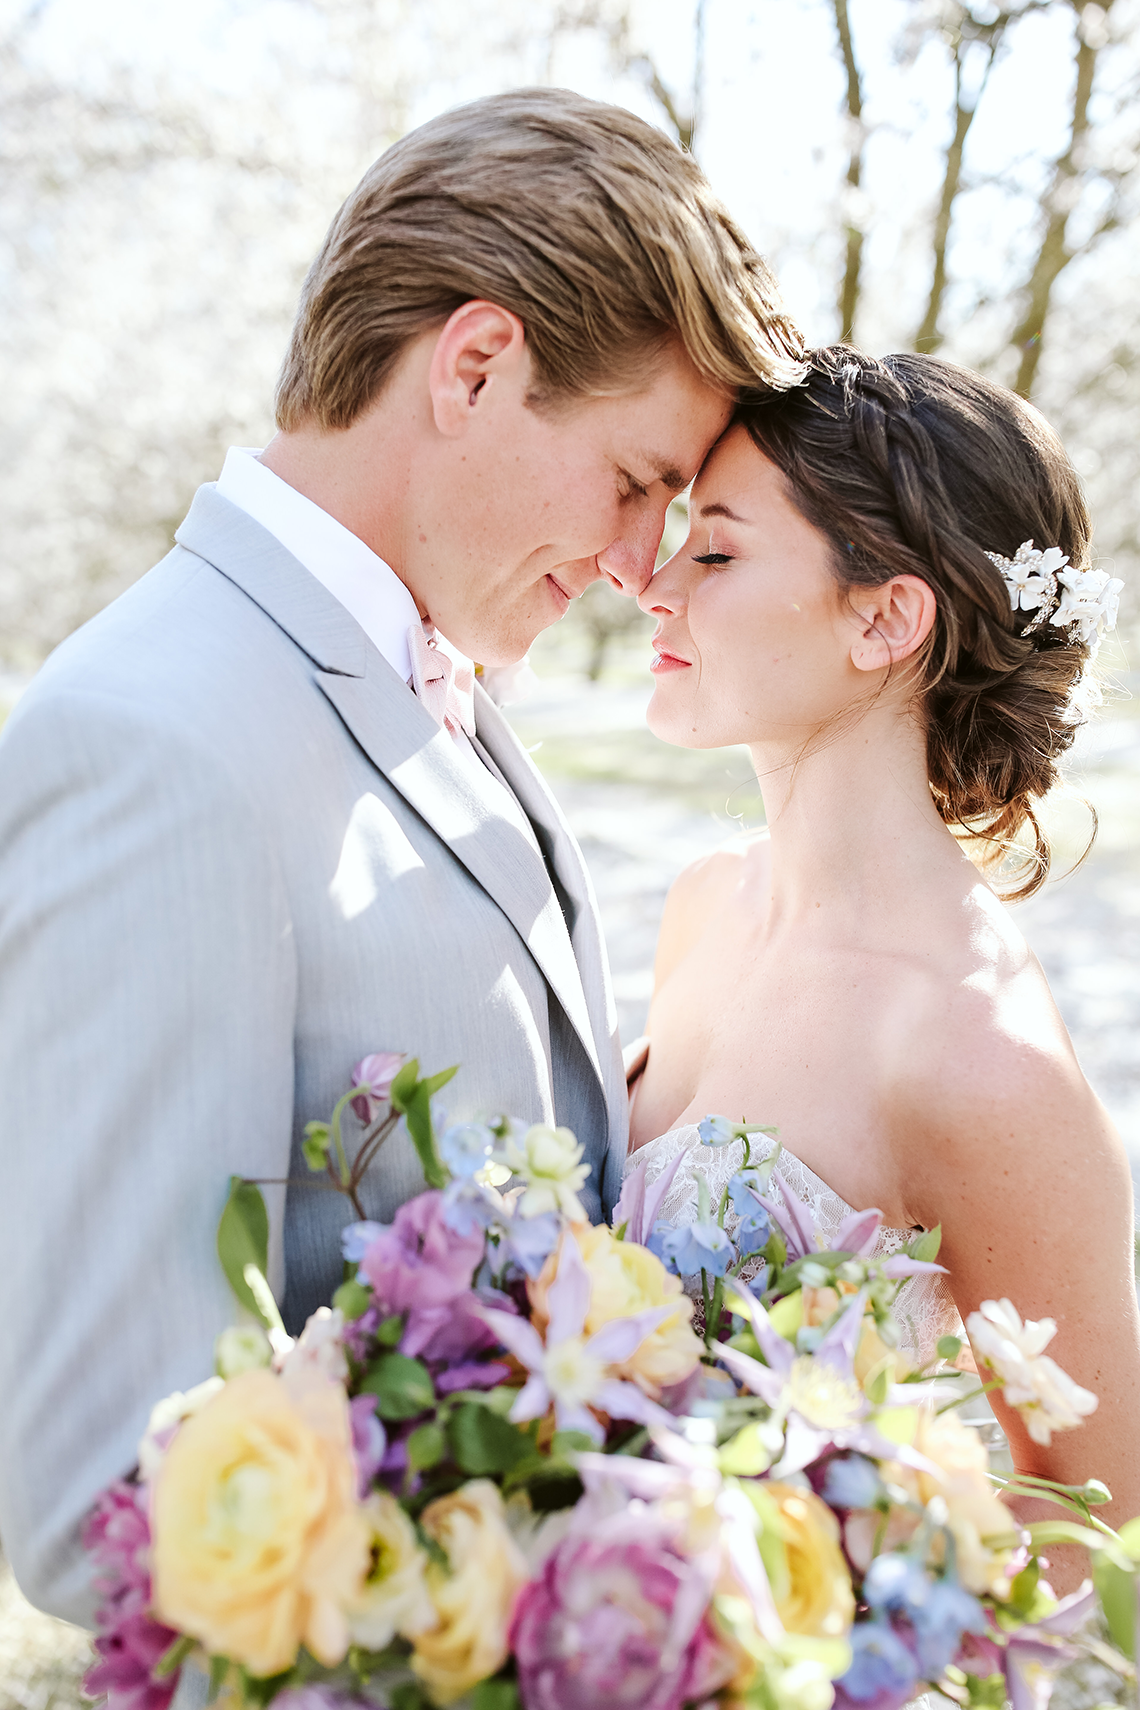 Whimsical Almond Orchard Blossom Wedding Inspiration – Playful Soul Photography 30